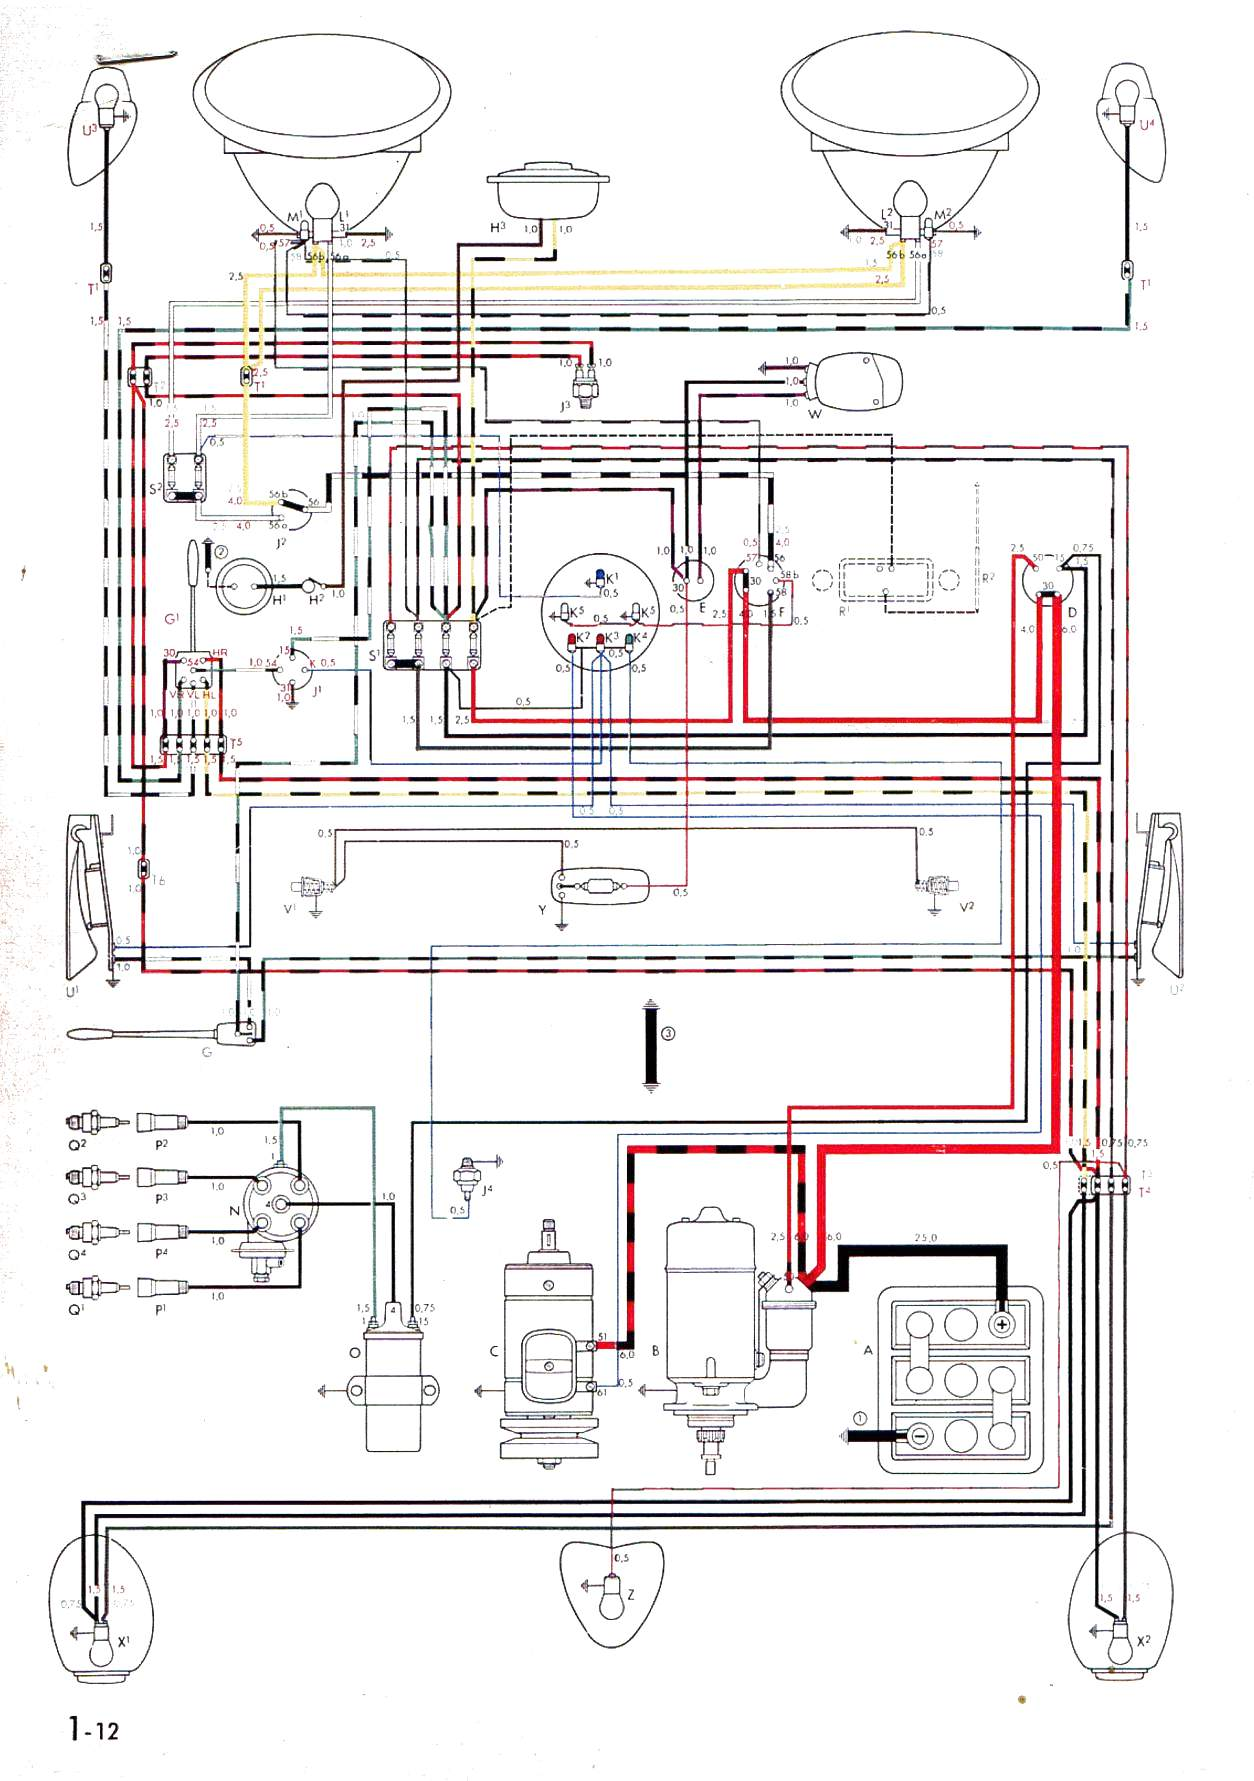 bug 55 57 vw wiring diagrams 1965 vw bus wiring harness at alyssarenee.co